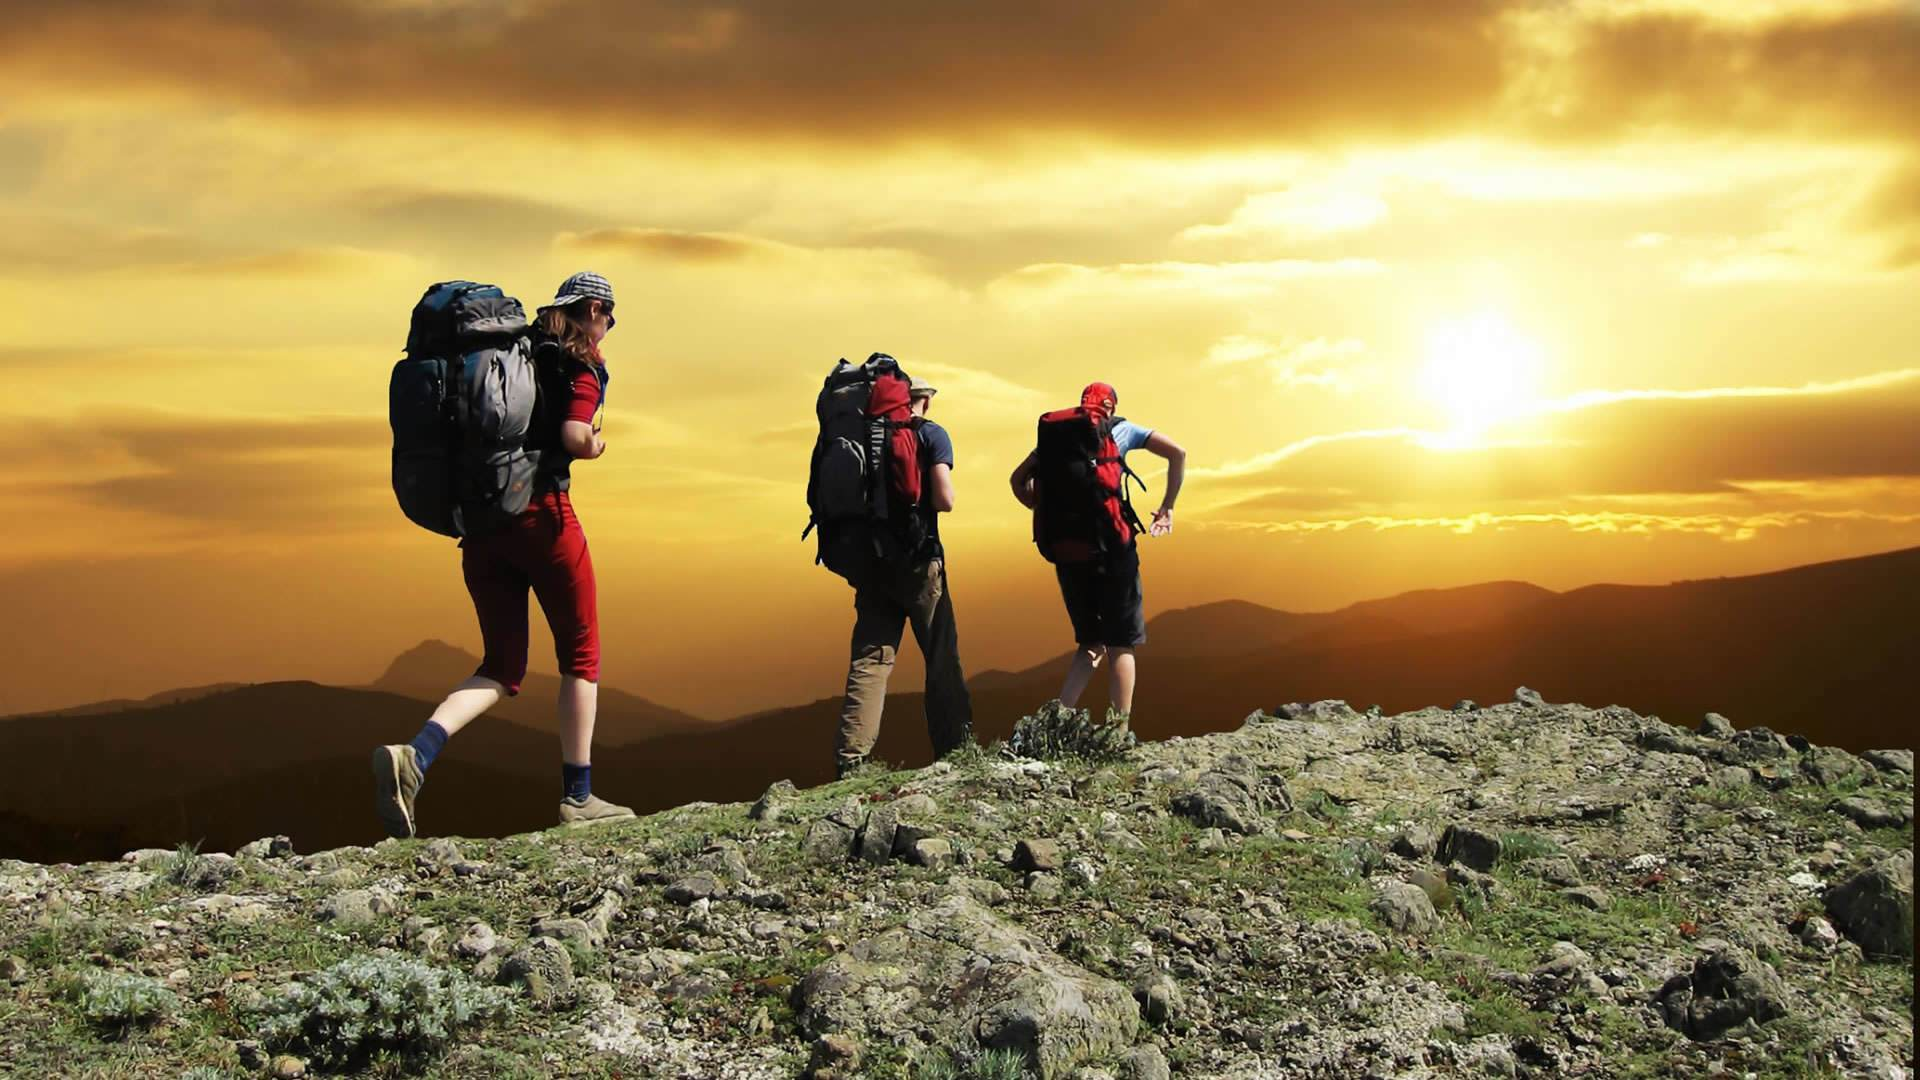 Free Download Outdoor Sports Wallpaper 1920x1080 1009163